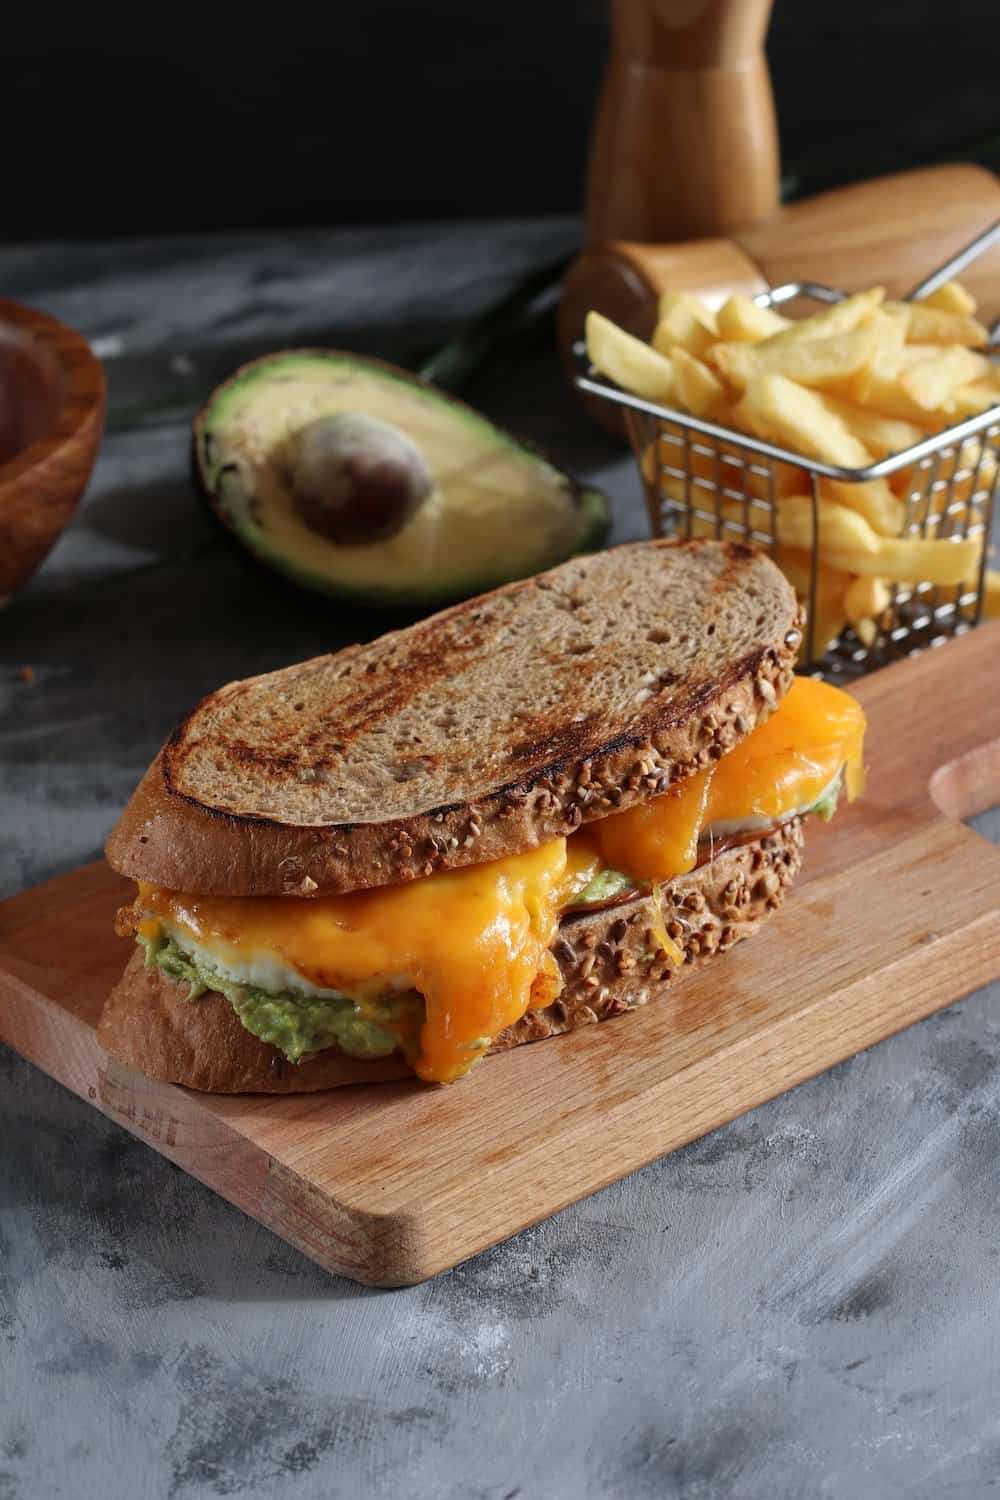 grilled cheese sandwich with avacado